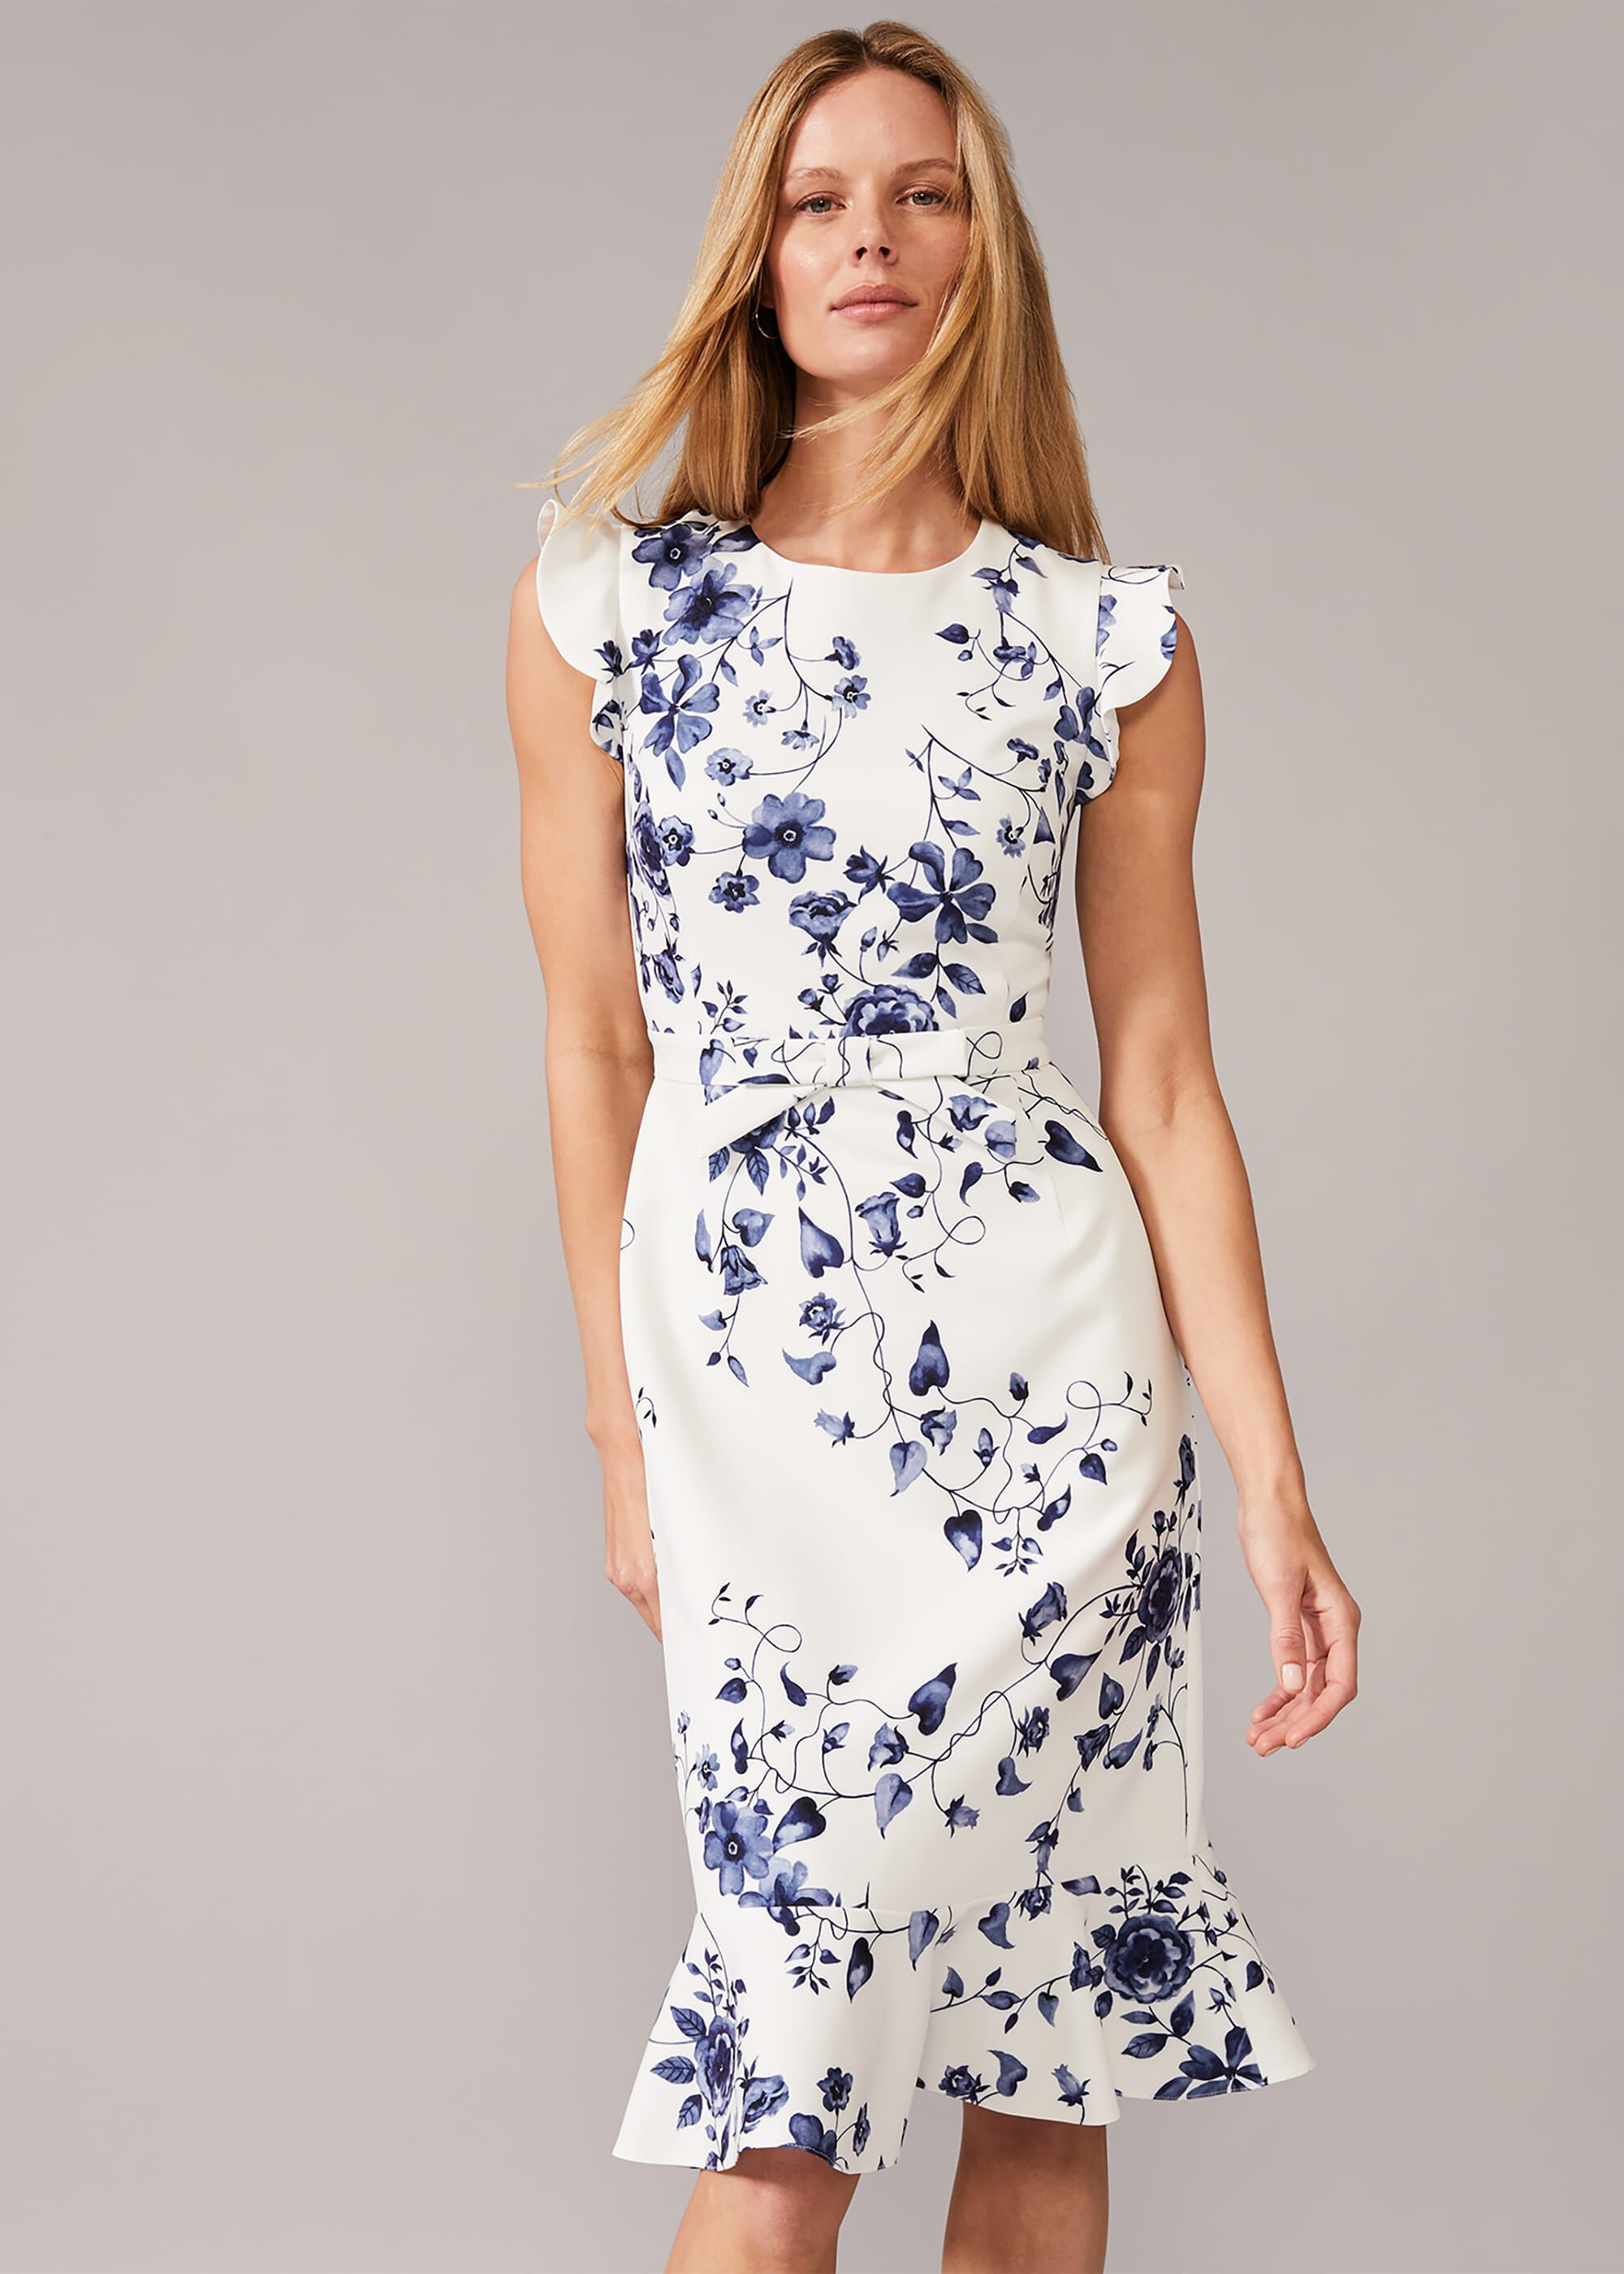 Phase Eight Tori Floral Fitted Dress, Cream, Fitted